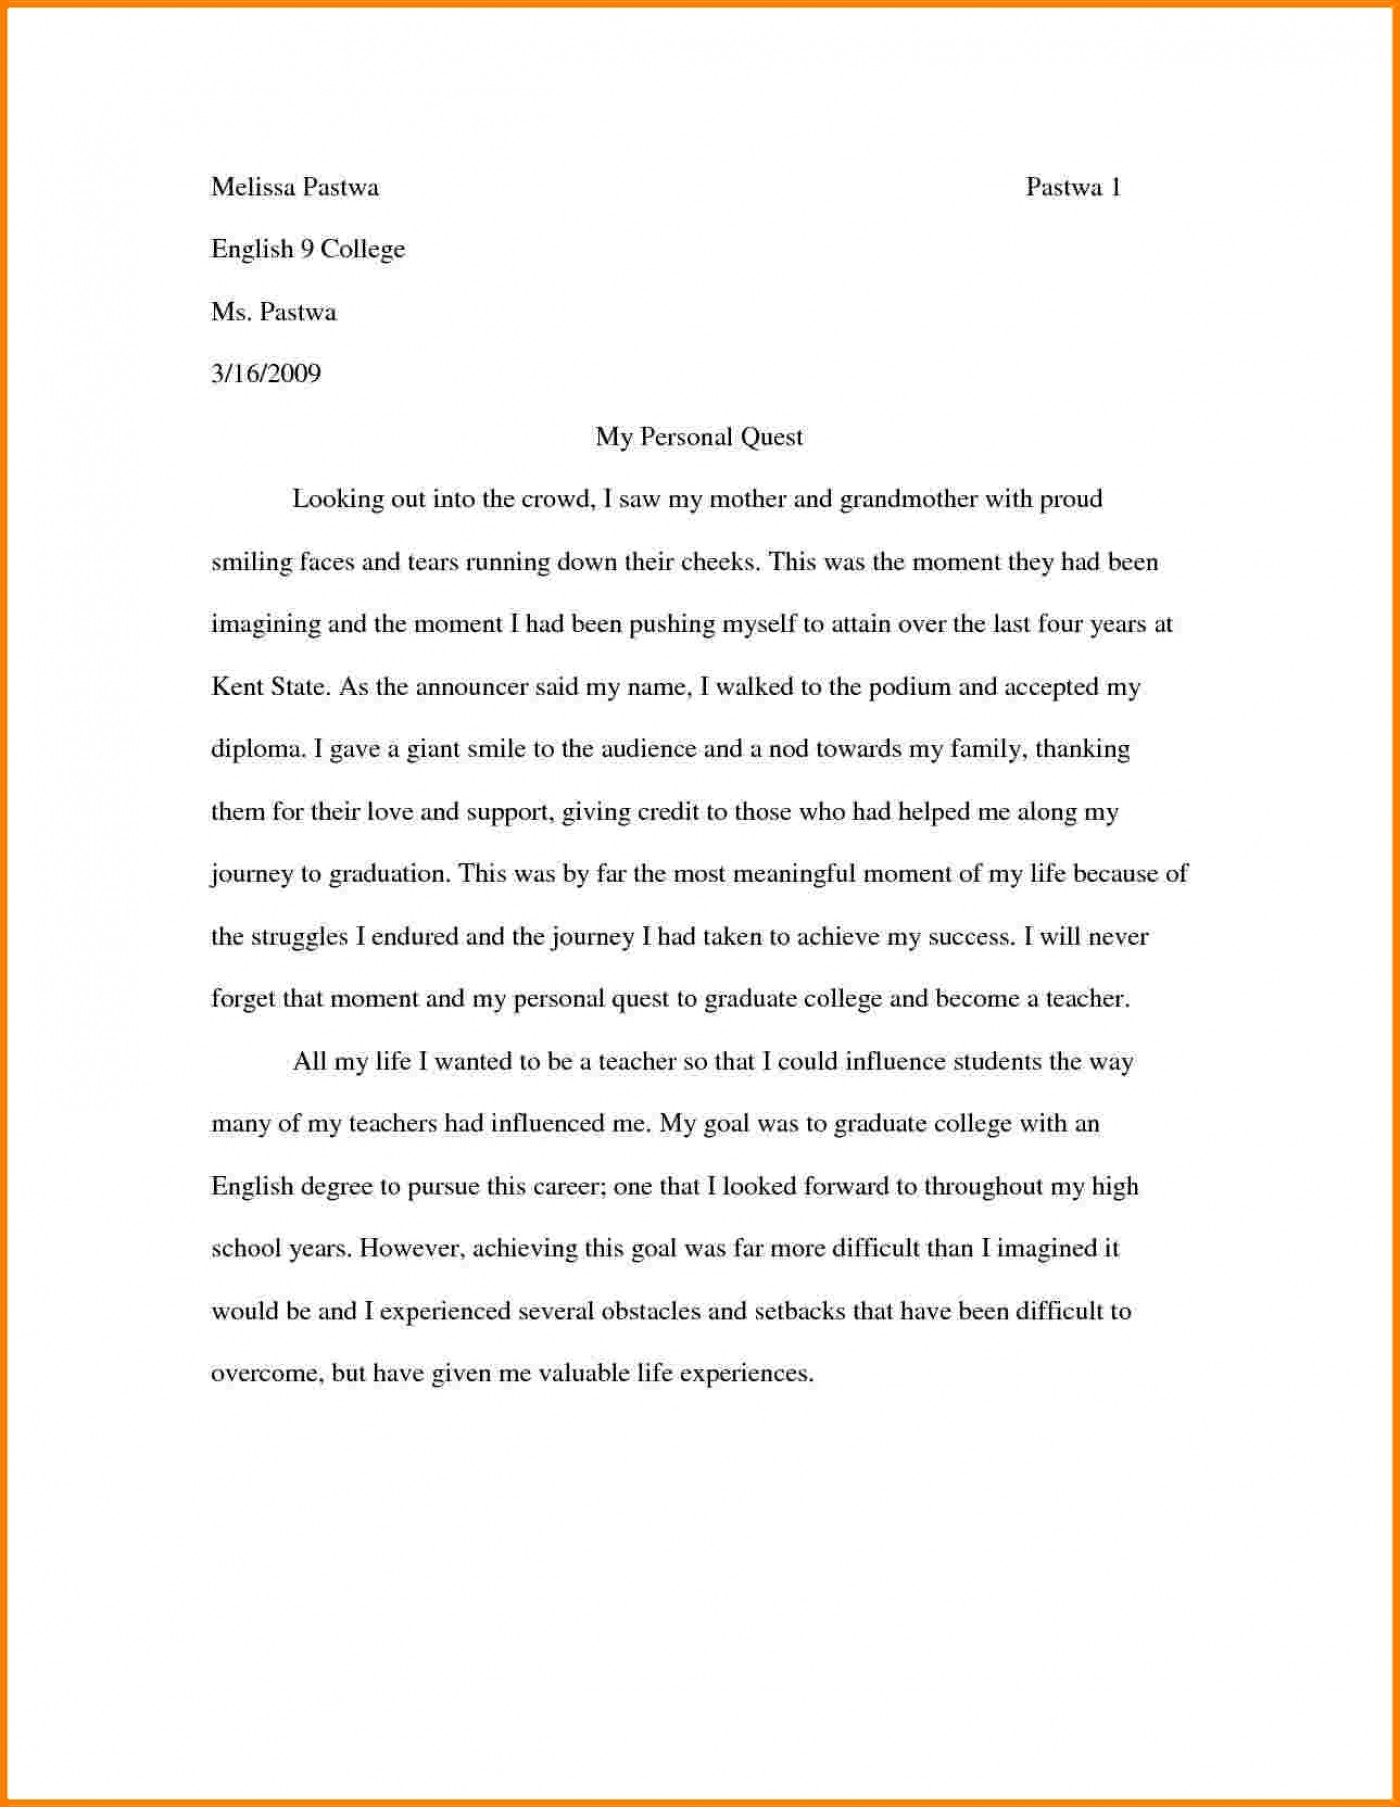 020 3341381556 How To Write Proposal20nt Essay Topics Buy Researchs Cheap Examples20 Good For Awesome Research Papers Argumentative In College Interesting Paper The Philippines 1400